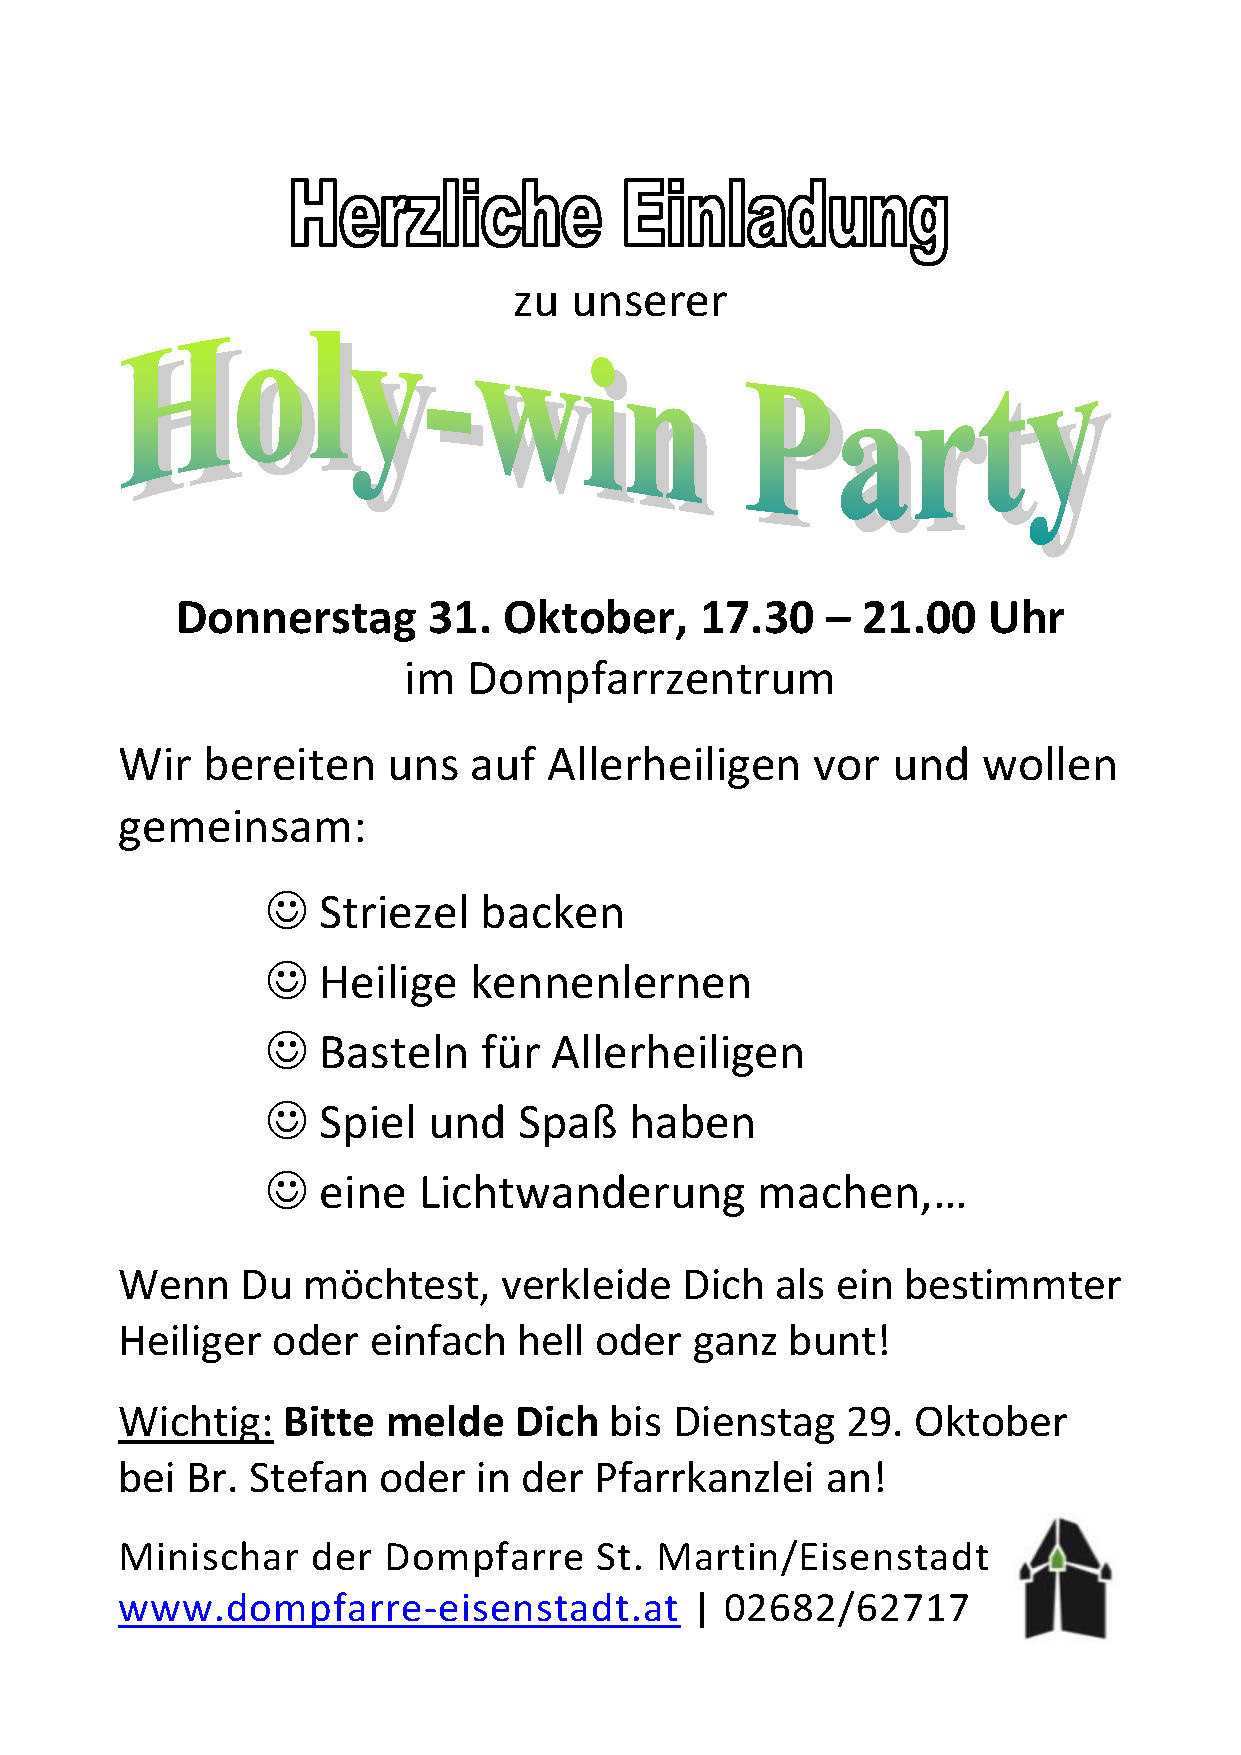 Holy-win Party